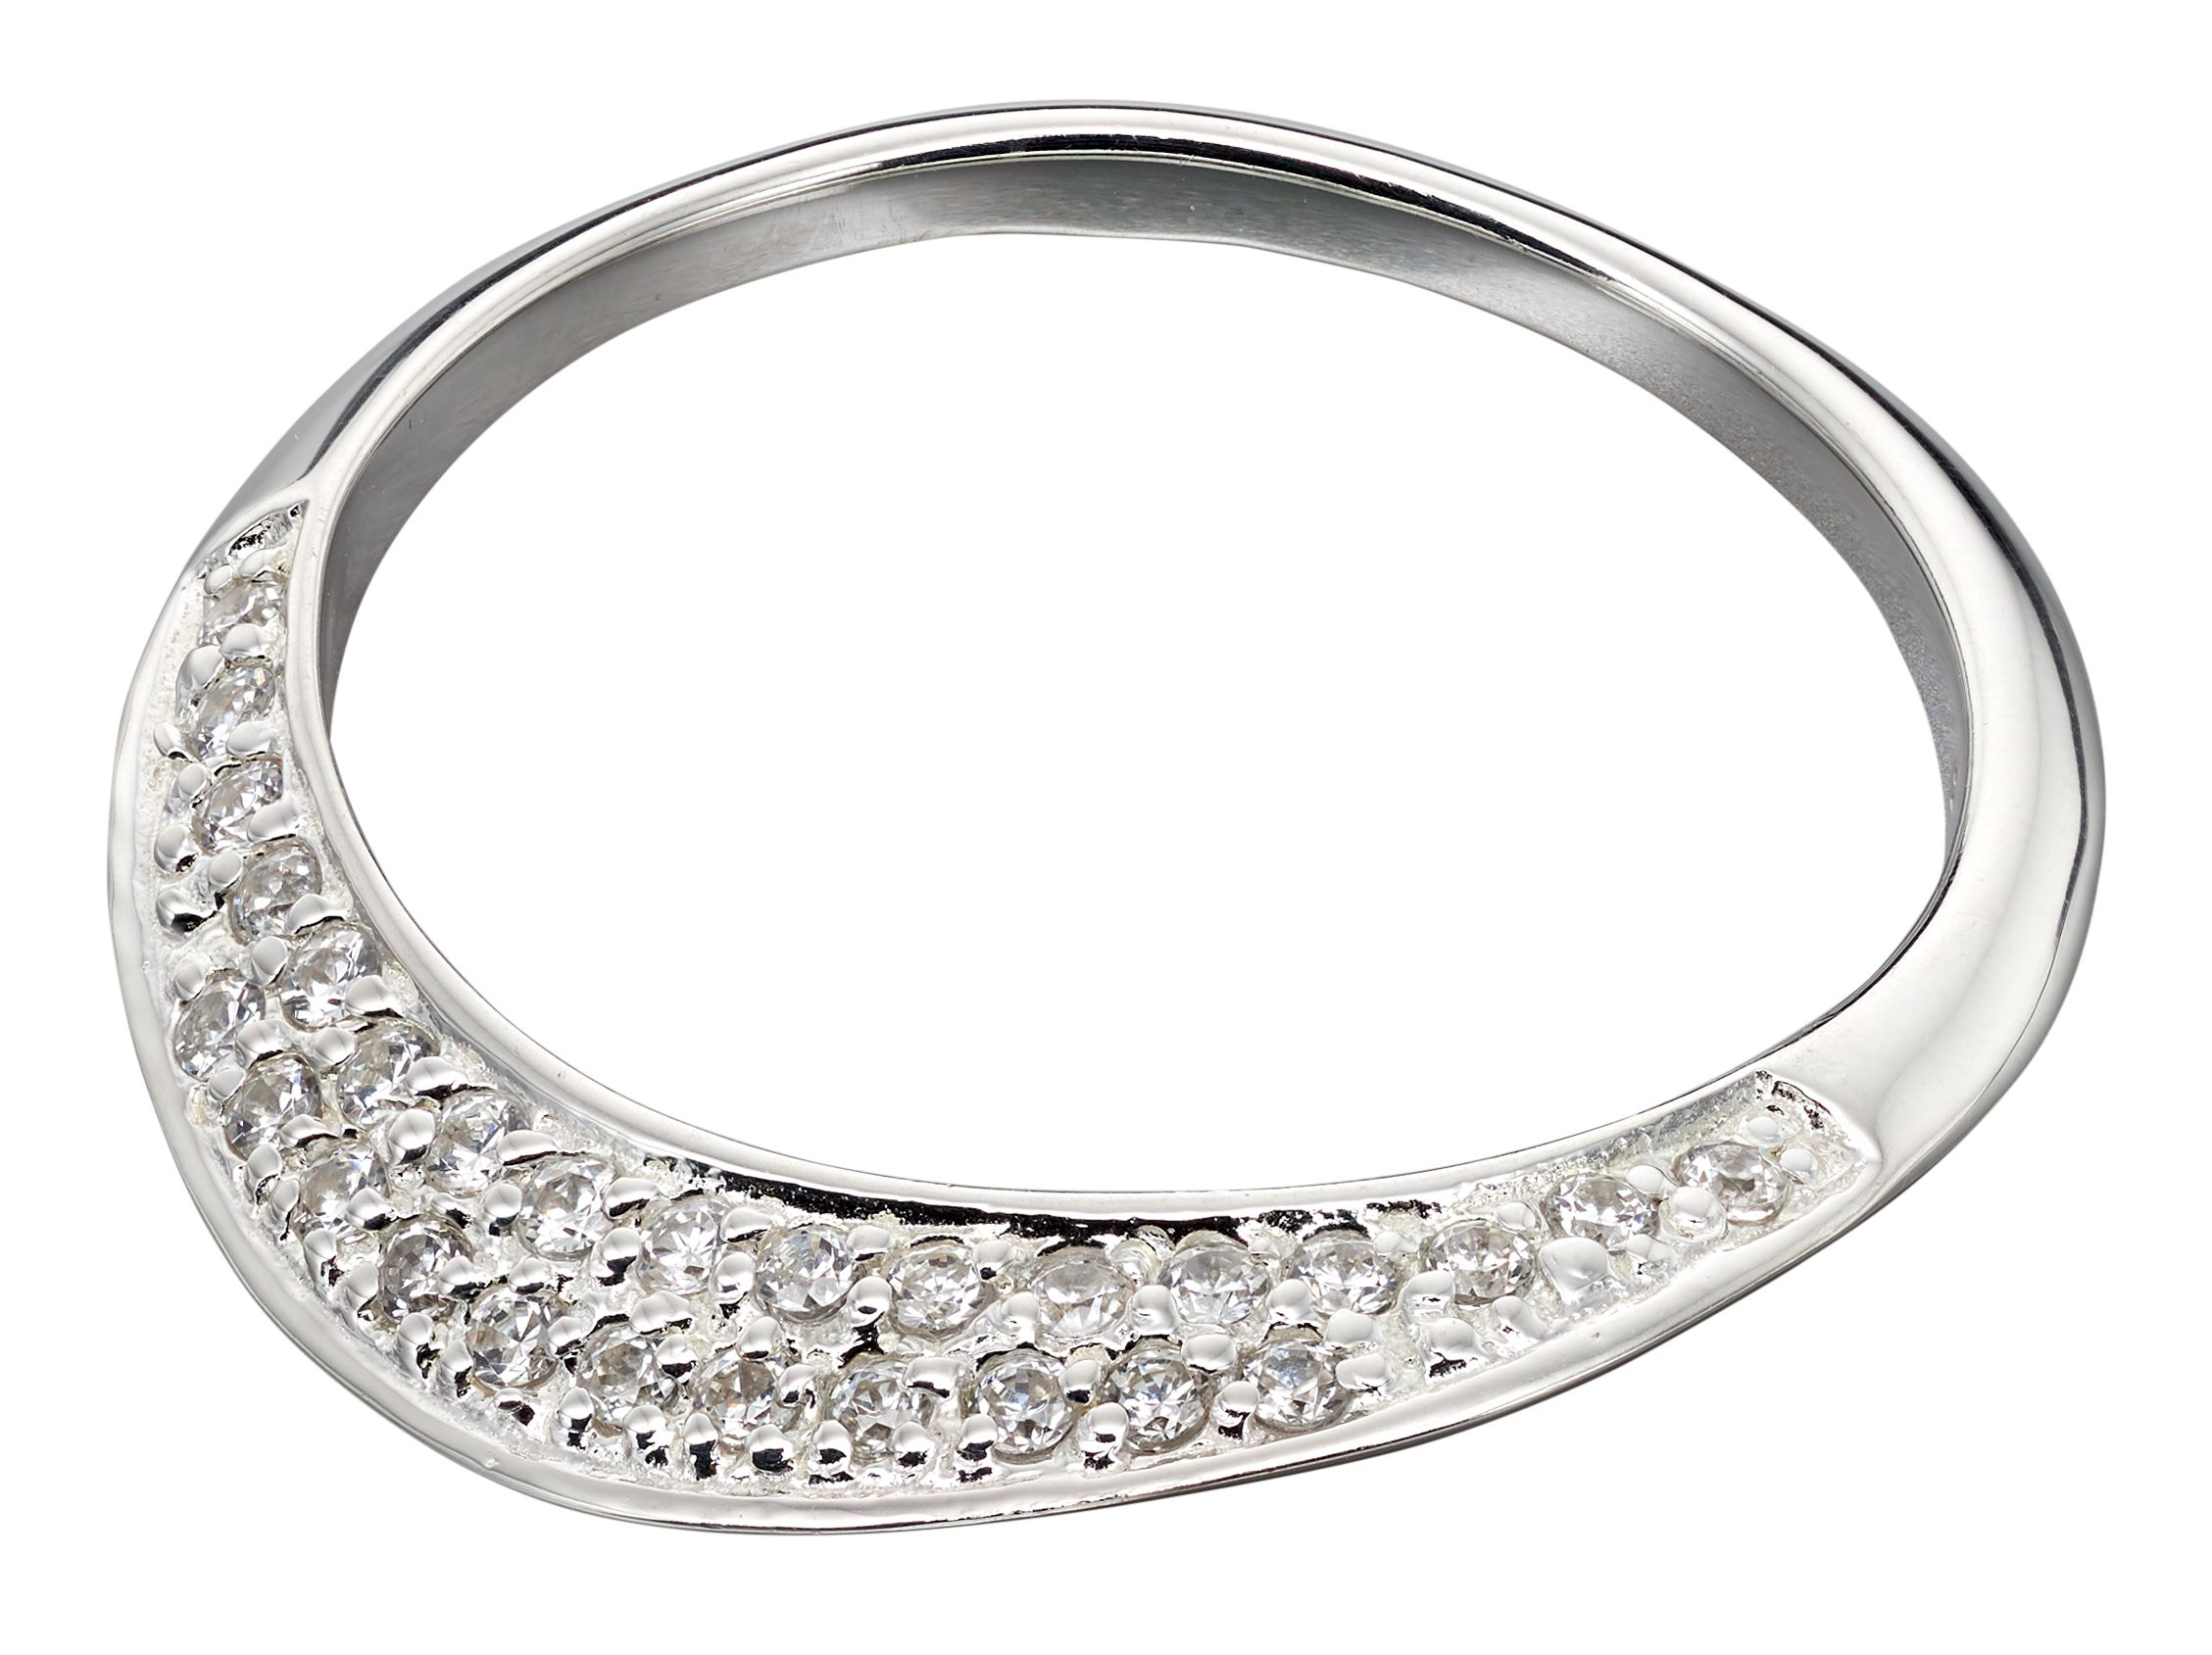 Elements Silver Womens 925 Sterling Silver Pave Cubic Zirconia Flat Band Ring